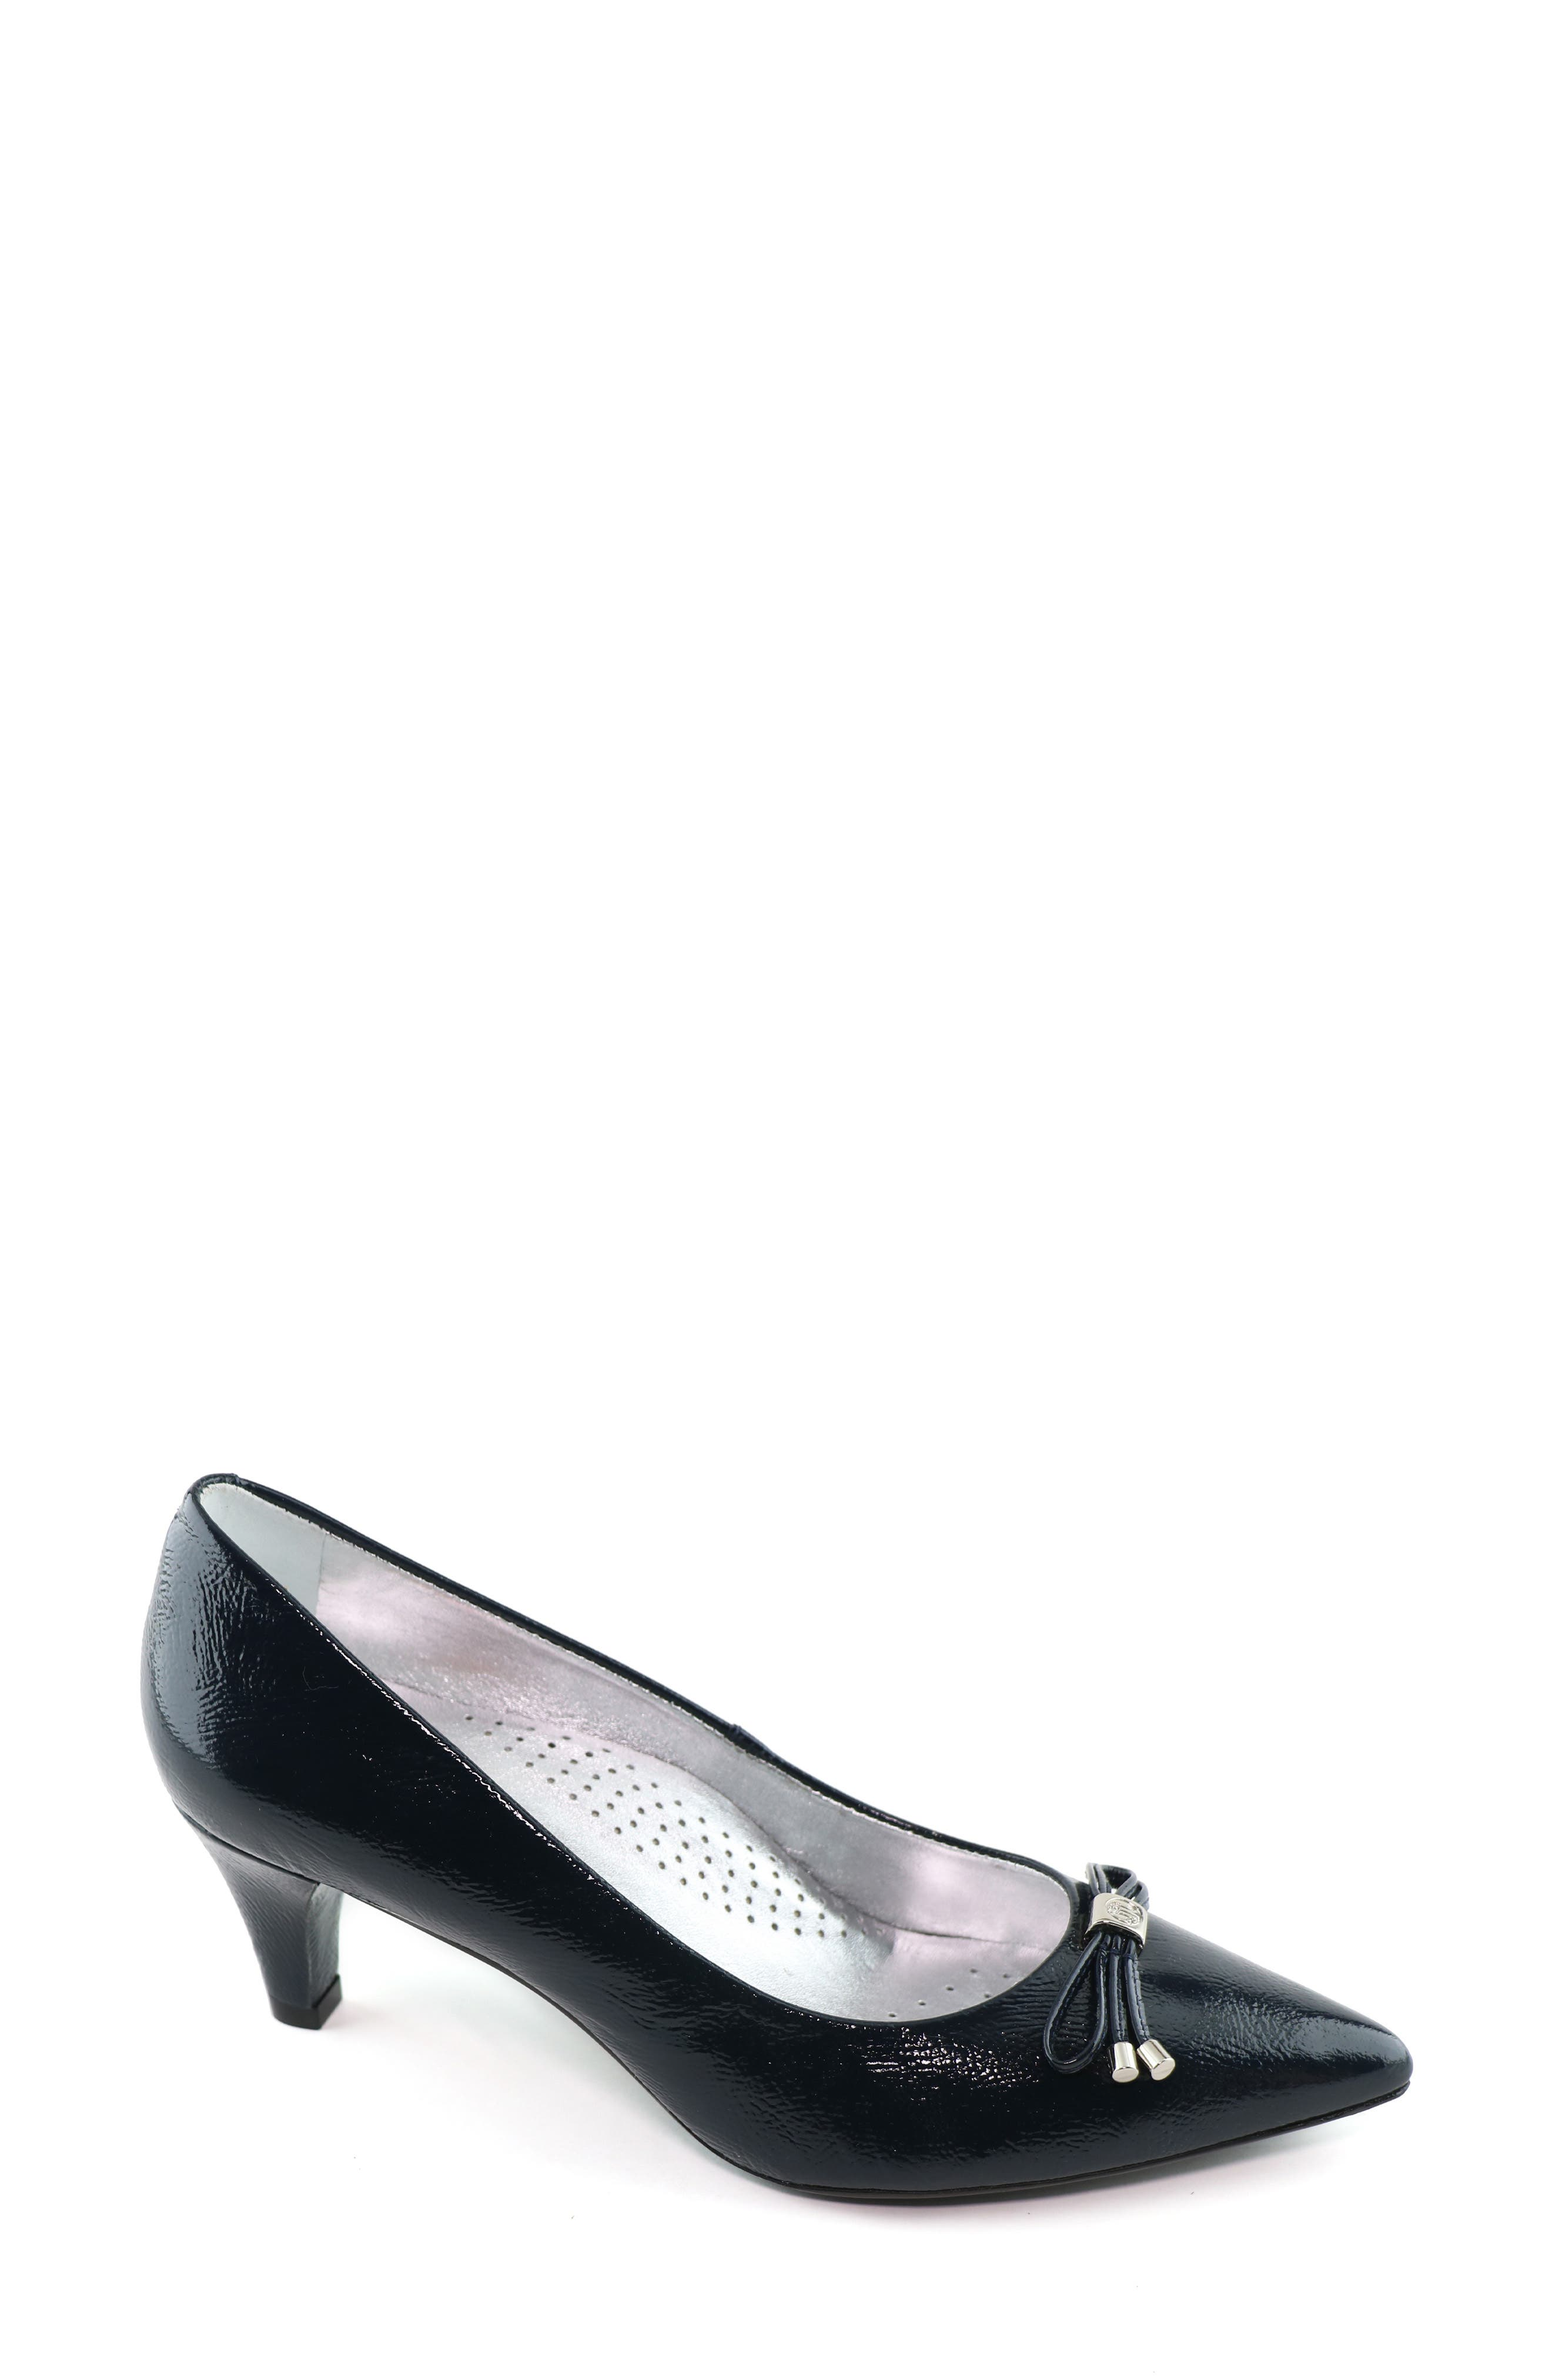 Amazing comfort and chic style combine beautifully on this pointy-toe pump fashioned with a neat bow, tapered heel and cushy, arch-supporting footbed. Style Name: Marc Joseph New York St. Peters Avenue Pump (Women). Style Number: 5977777. Available in stores.